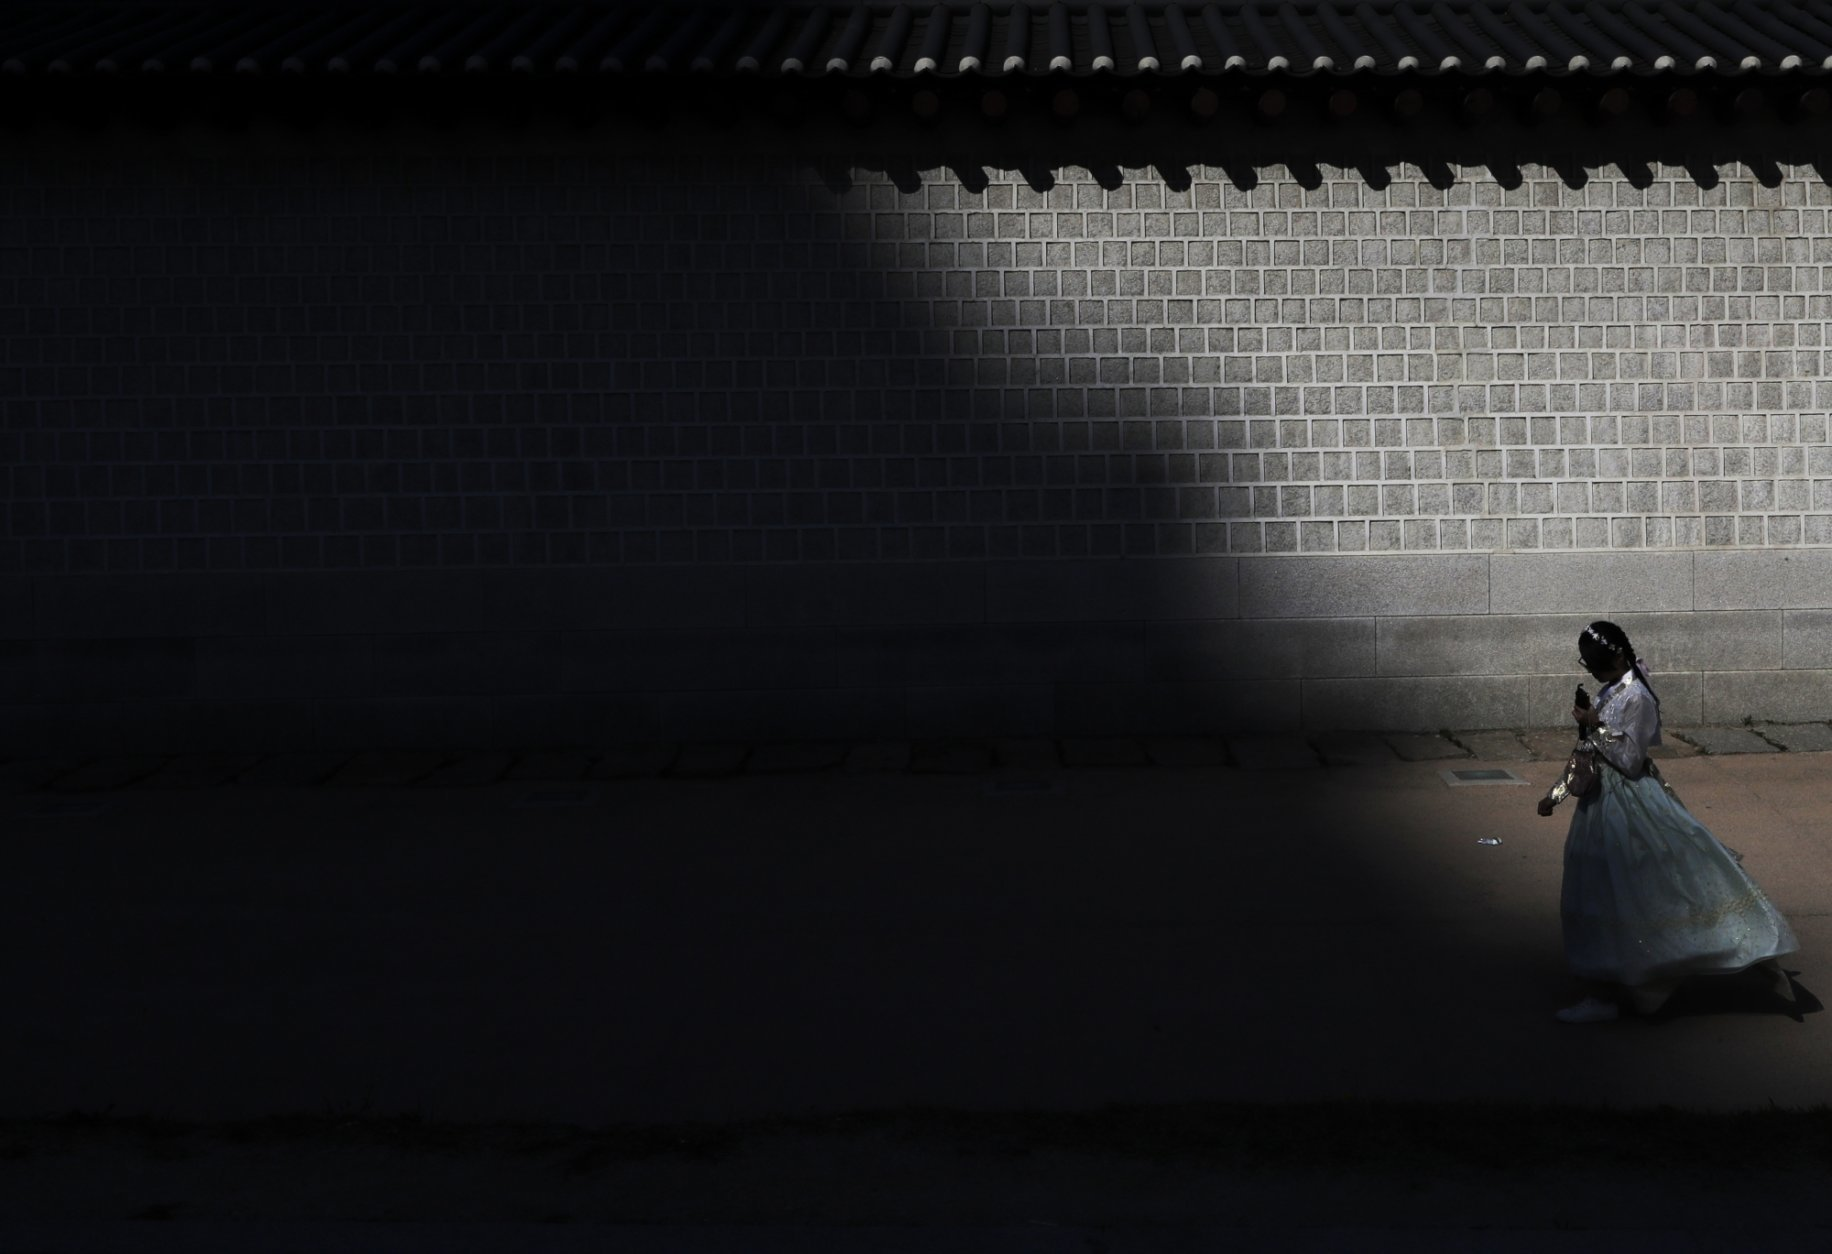 """A visitor dressed in traditional South Korean """"Hanbok"""" clothing walks along a wall outside the Gyeongbok Palace, the main royal palace during the Joseon Dynasty and one of South Korea's well known landmarks in Seoul, South Korea, Friday, Oct. 19, 2018. (AP Photo/Lee Jin-man)"""